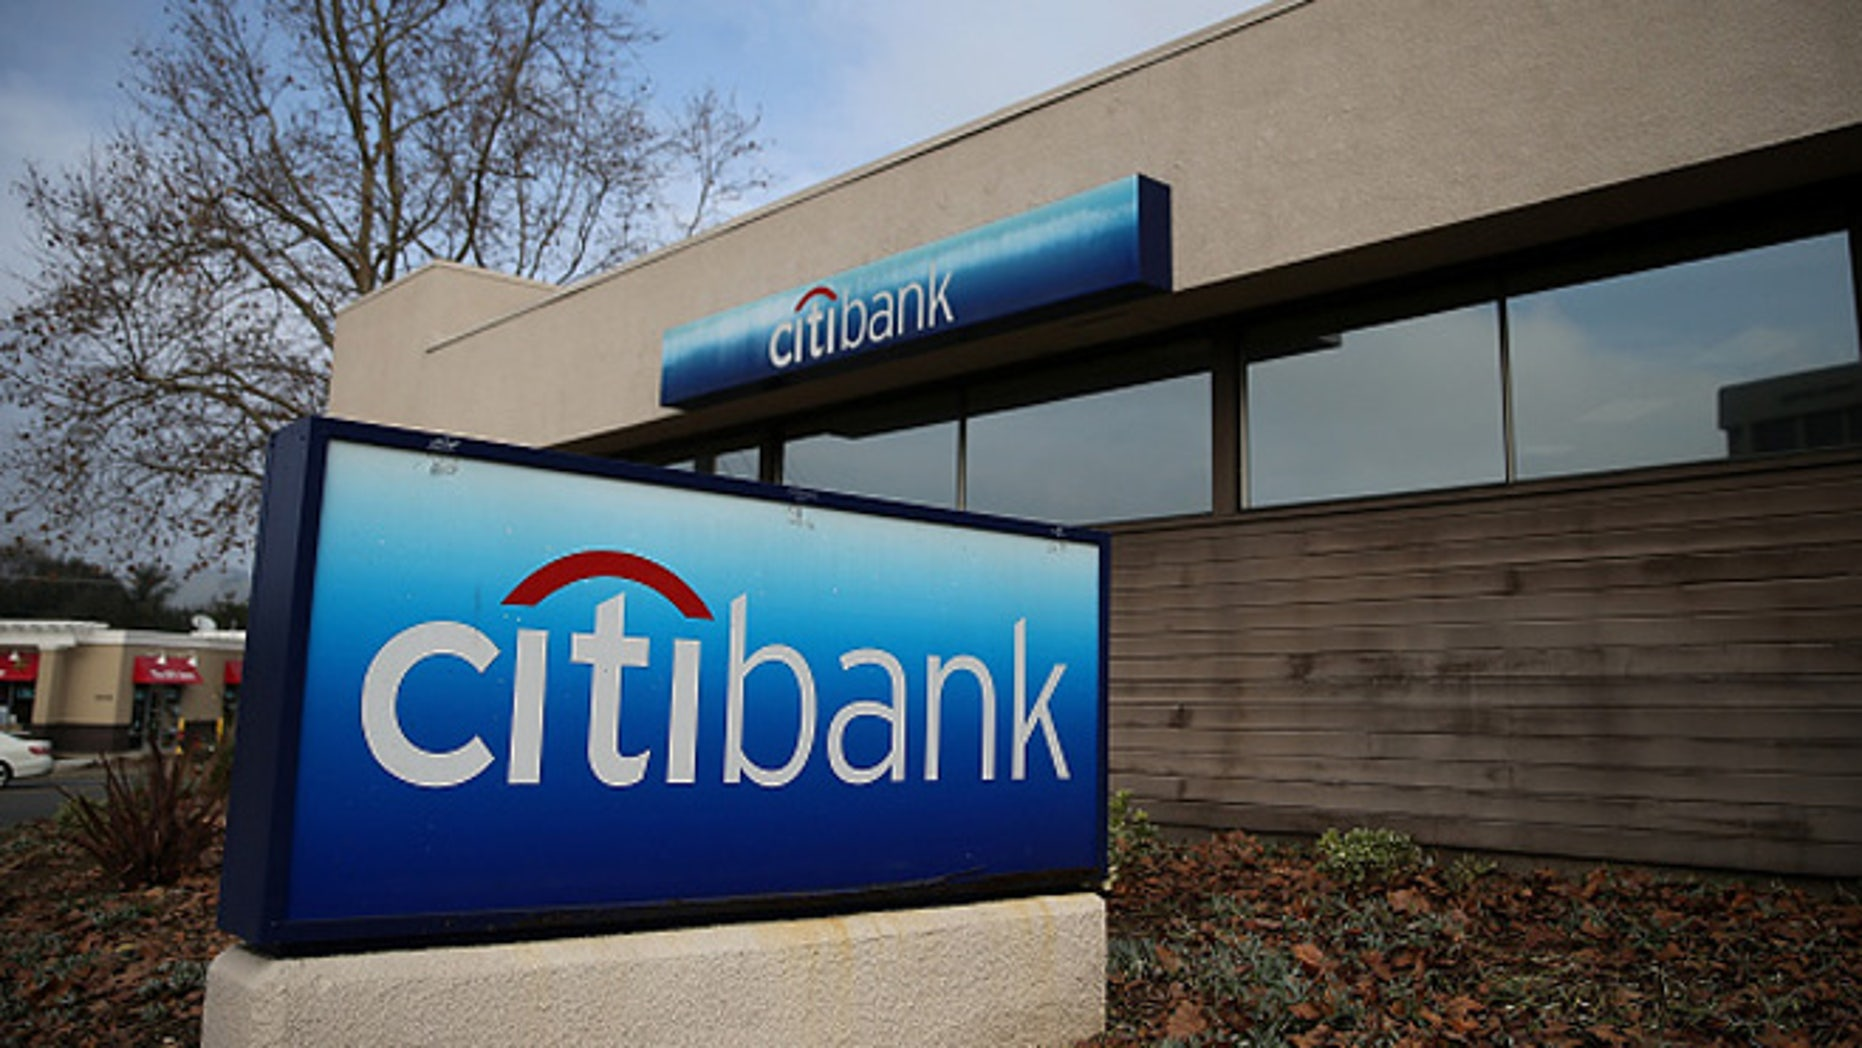 SAN RAFAEL, CA - JANUARY 15:  A sign stands in front of a Citibank branch office on January 15, 2015 in San Rafael, California.  Citigroup Inc reported an 86 percent decline in fourth quarter earnings with net profits of $346 million, or 6 cents per share, compared to $2.60 billion, or 82 cents per share, one year ago.  (Photo by Justin Sullivan/Getty Images)